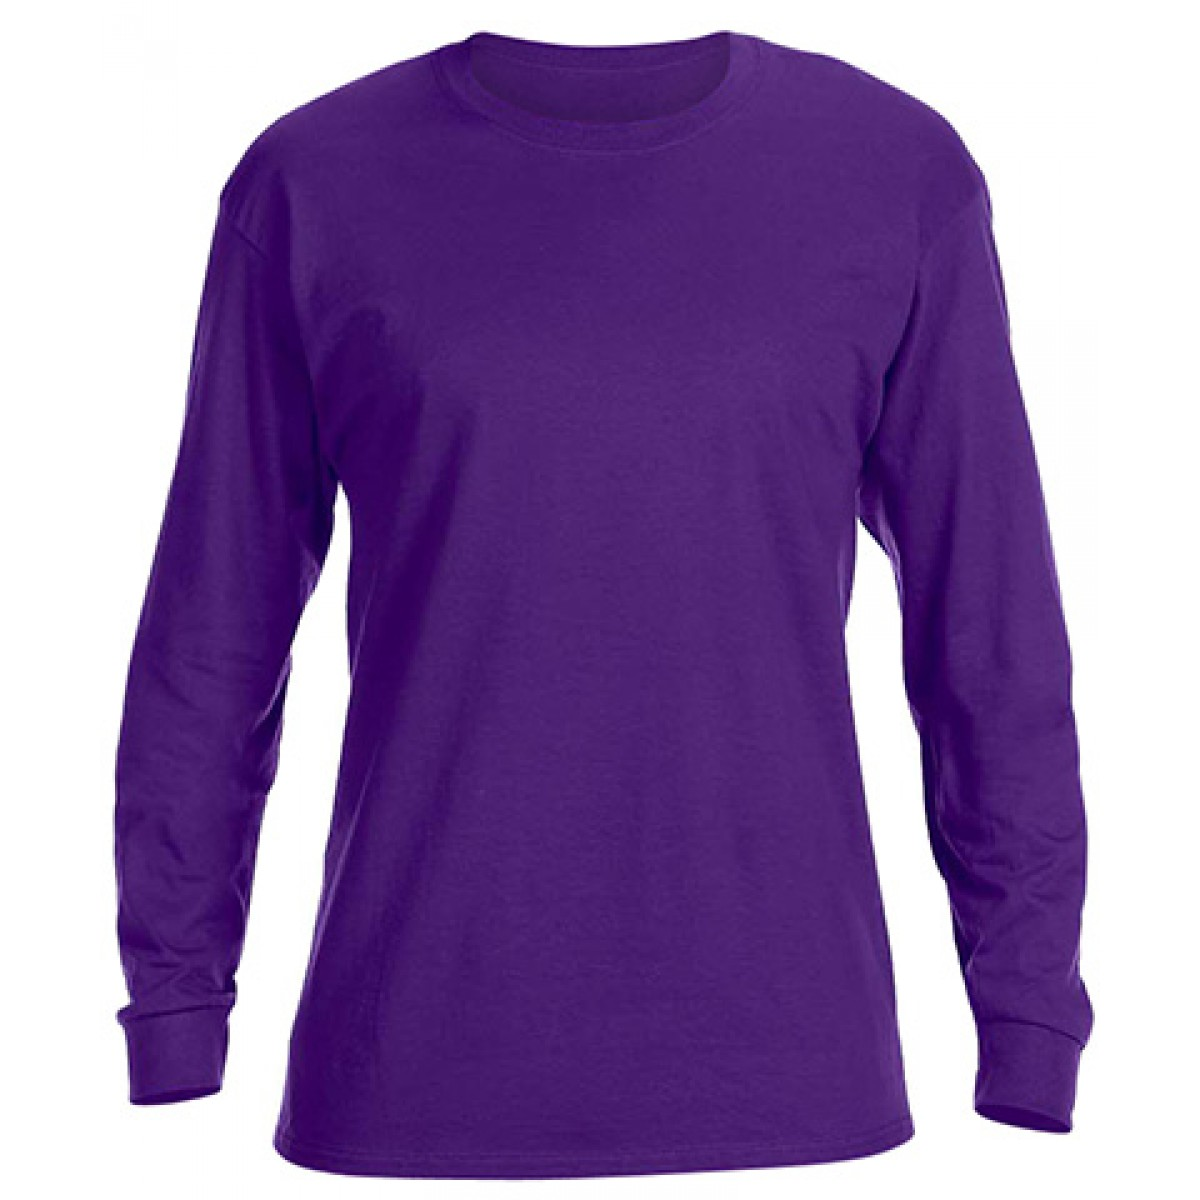 Basic Long Sleeve Crew Neck -Purple-S